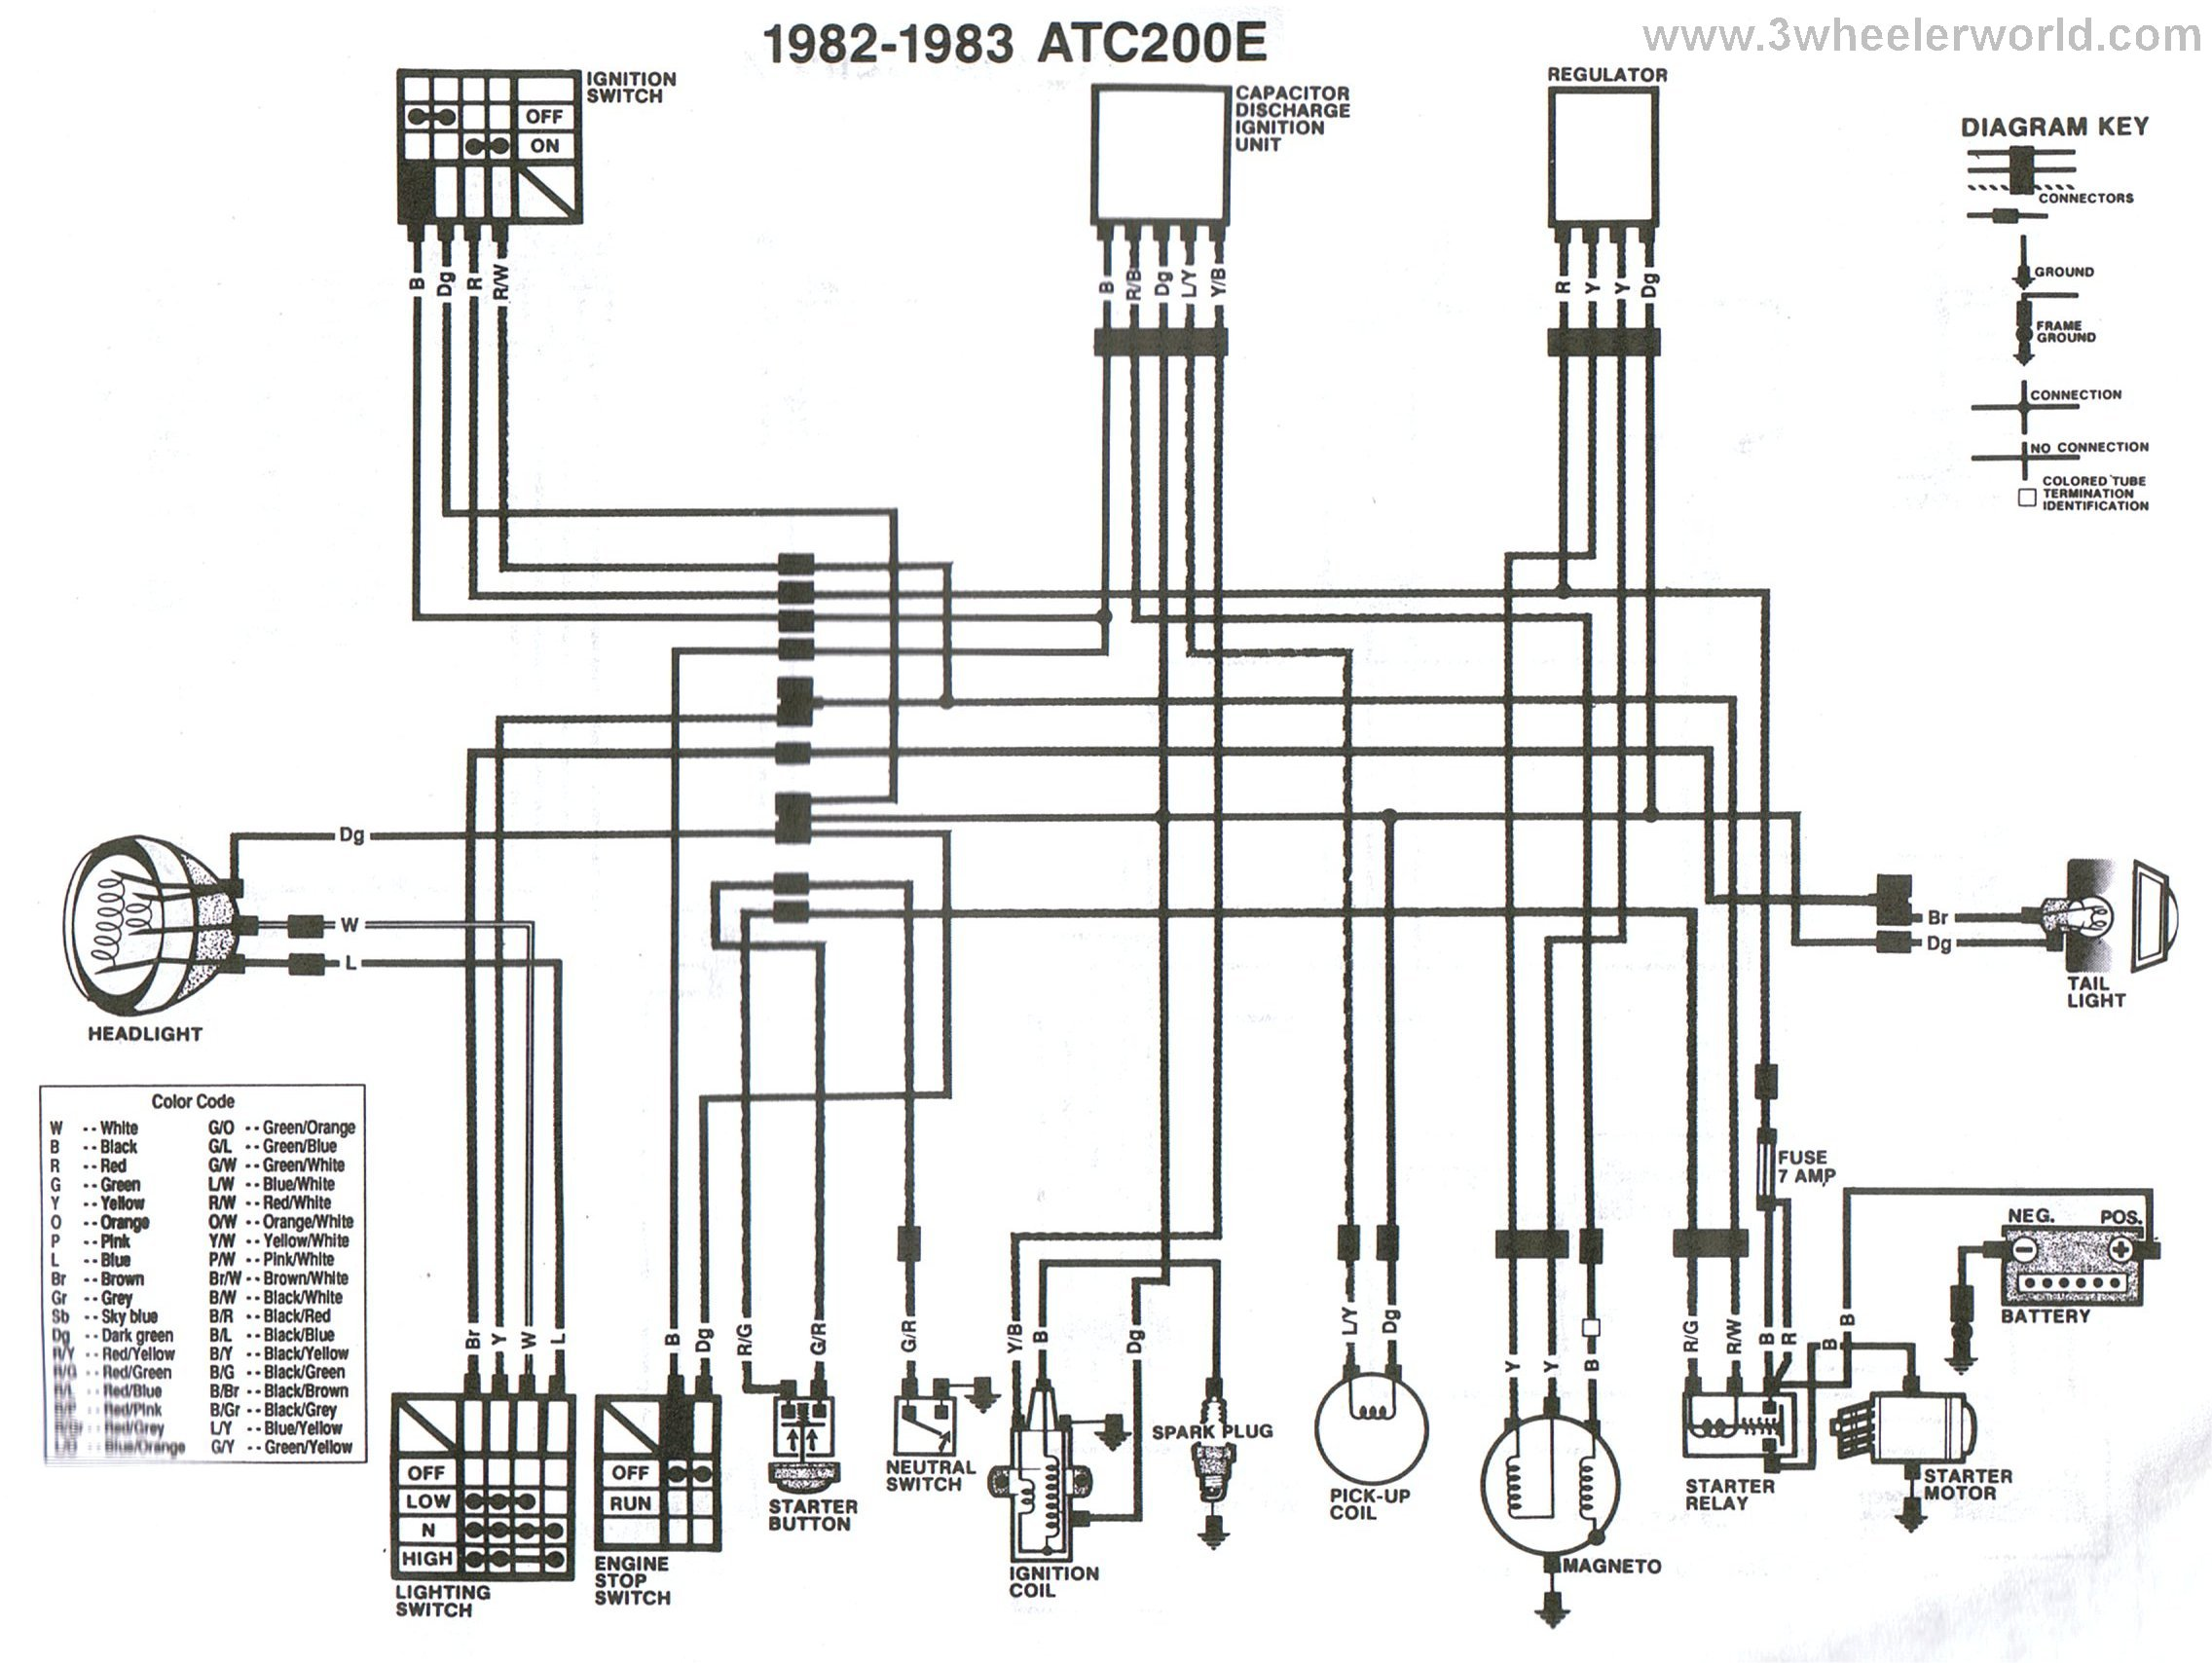 ATC200Ex82Thru83 3 wheeler world tech help honda wiring diagrams wiring diagram for honda atc 200 at bayanpartner.co